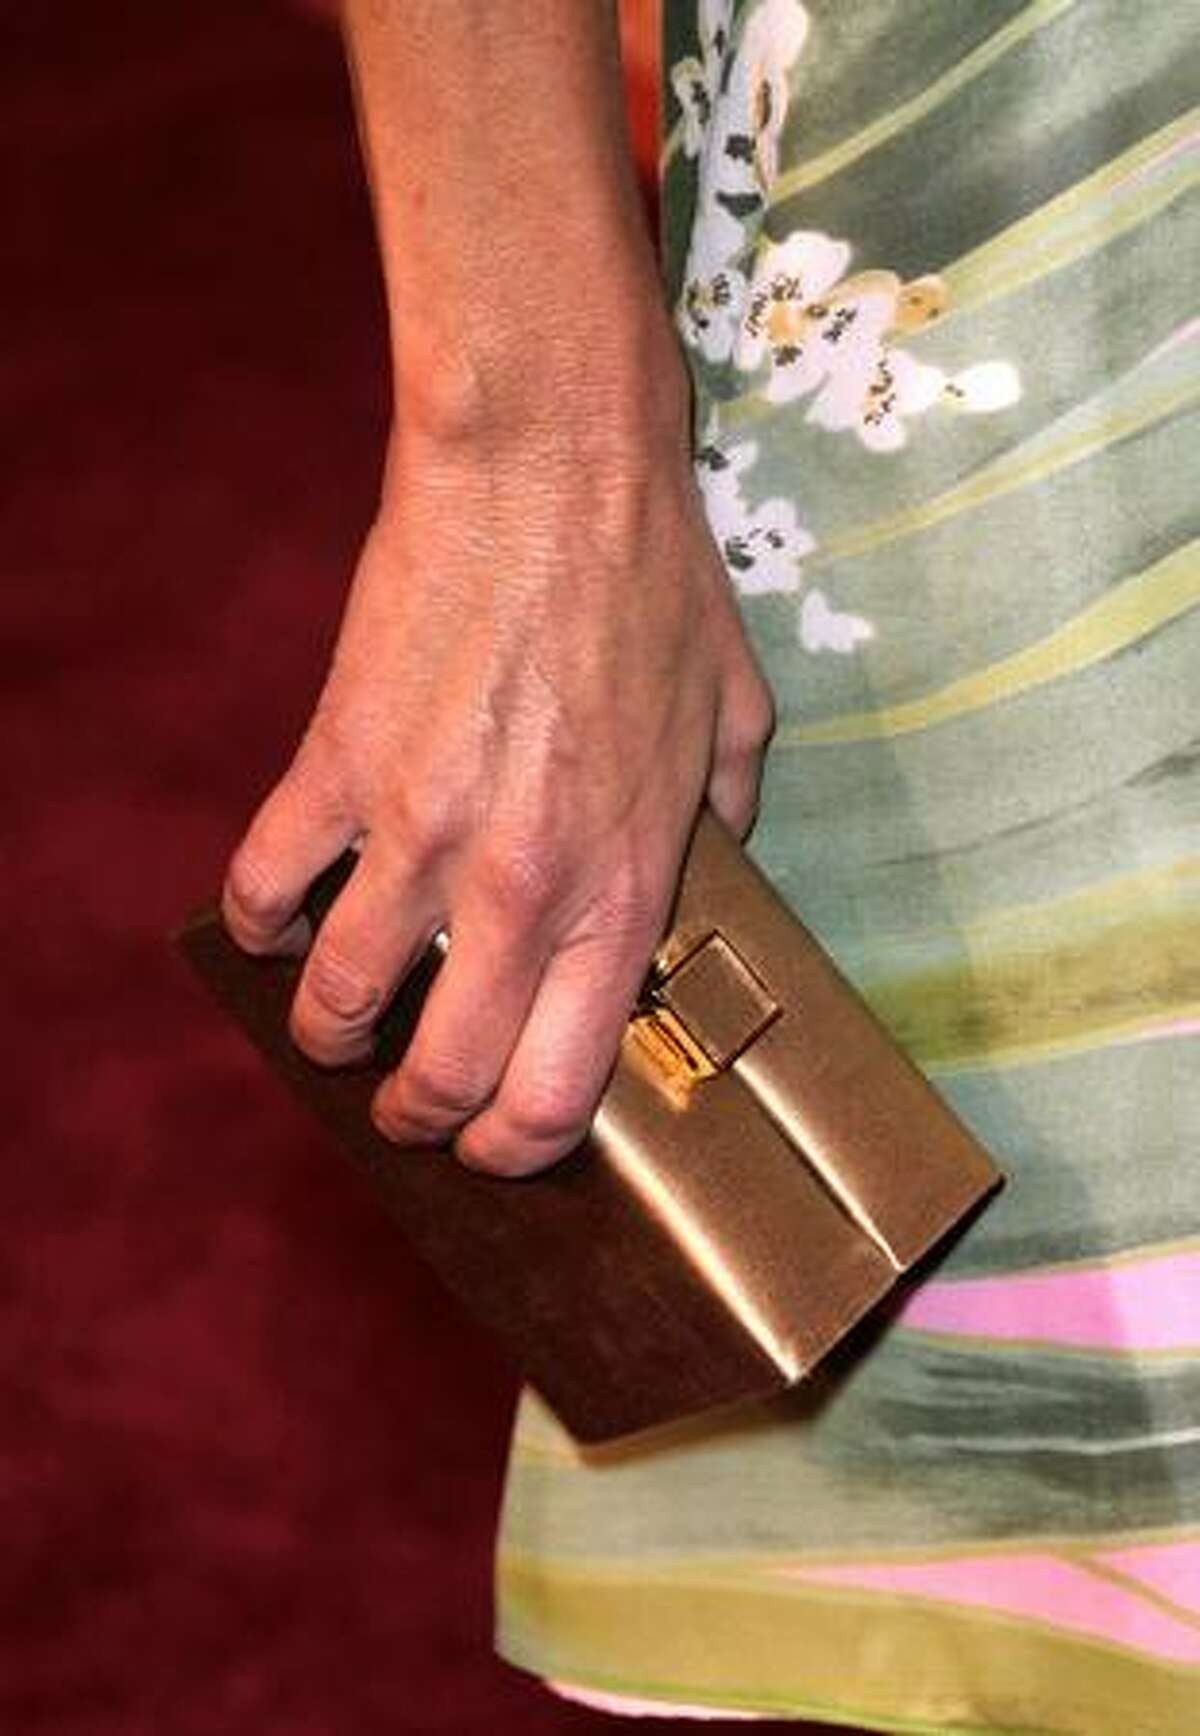 A detail of a handbag carried by actress Heather Locklear as she arrives.